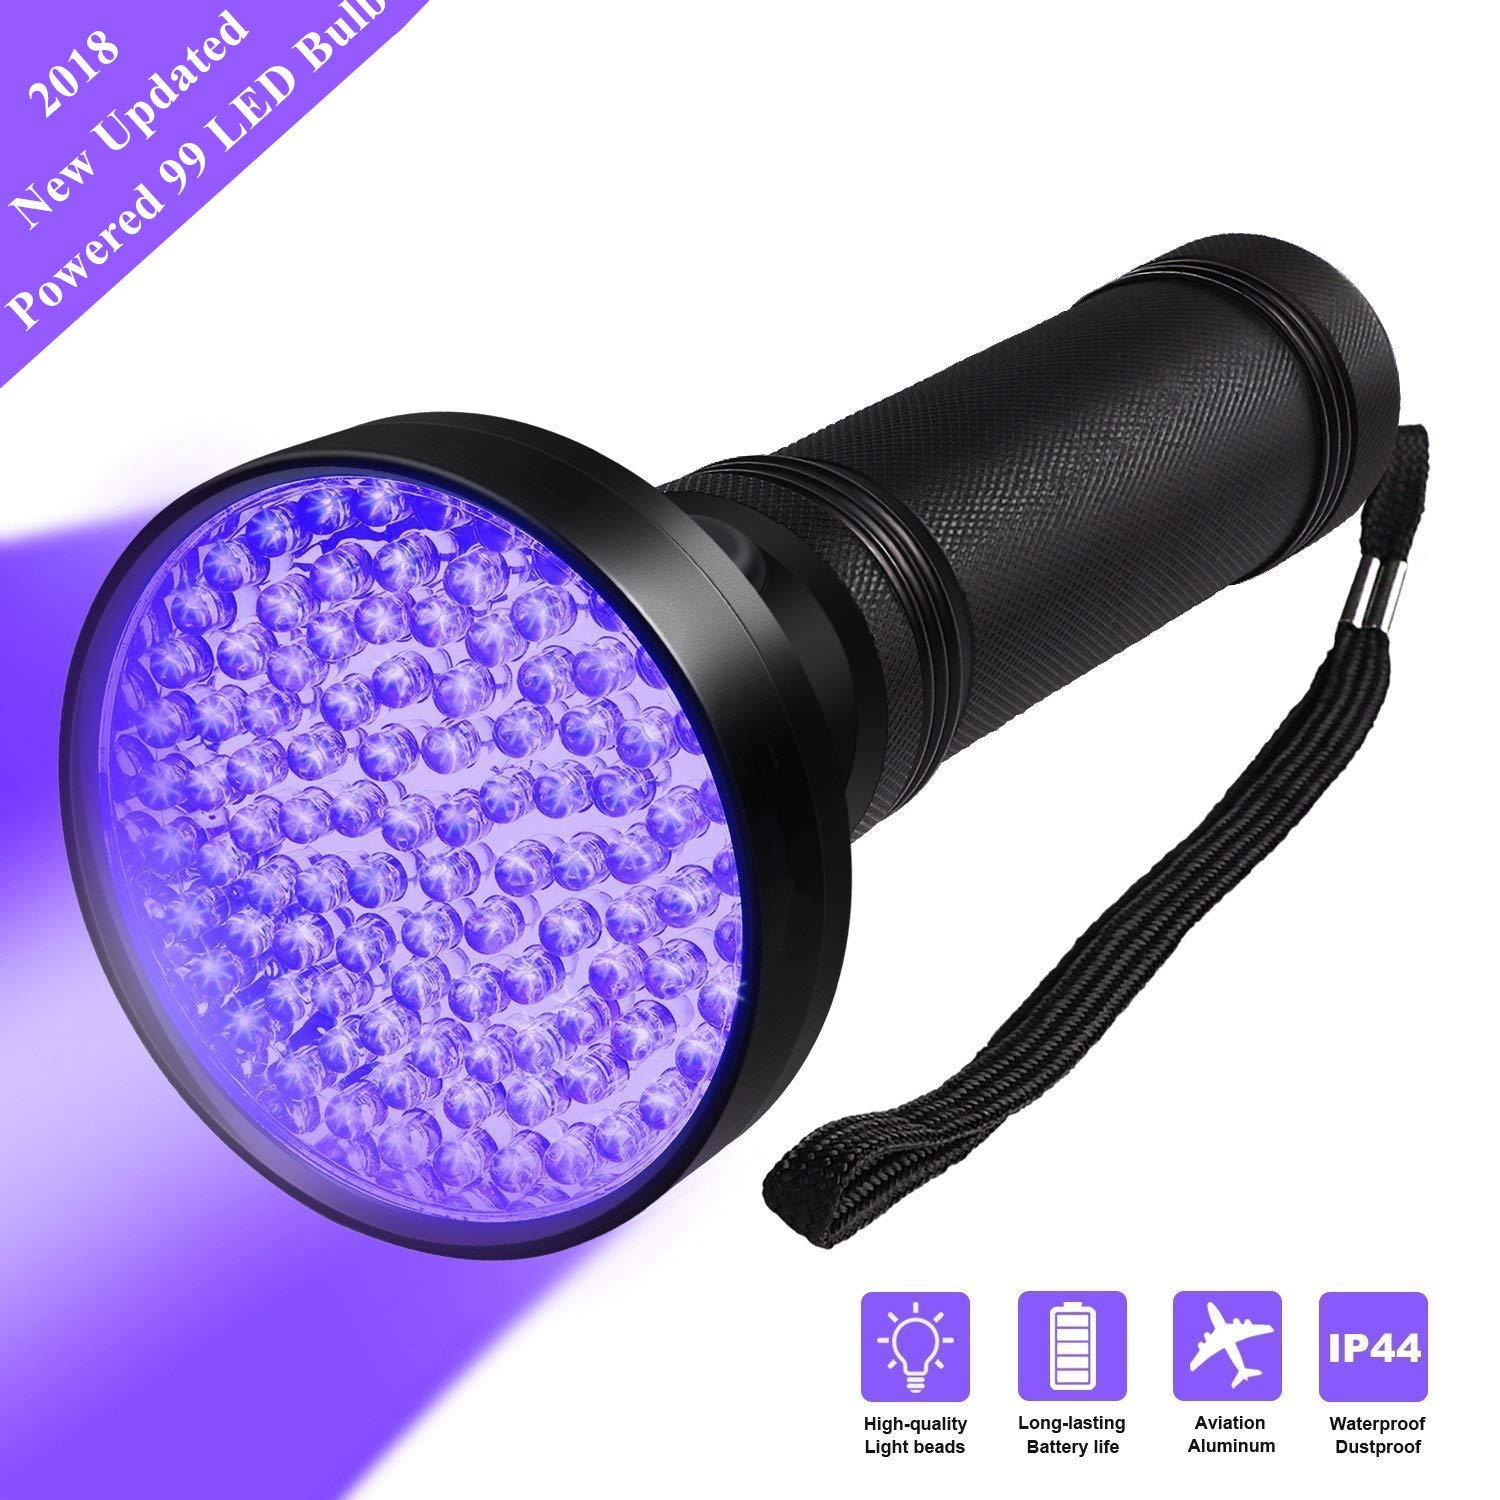 Black Light UV Flashlights, 68 LED 395 NM Ultraviolet Blacklight Detector for Home Hotel Dogs Cat Pet Urine Dry Stains Bed Bug Mold Leaks Scorpions Passport Cosmetic Inspection